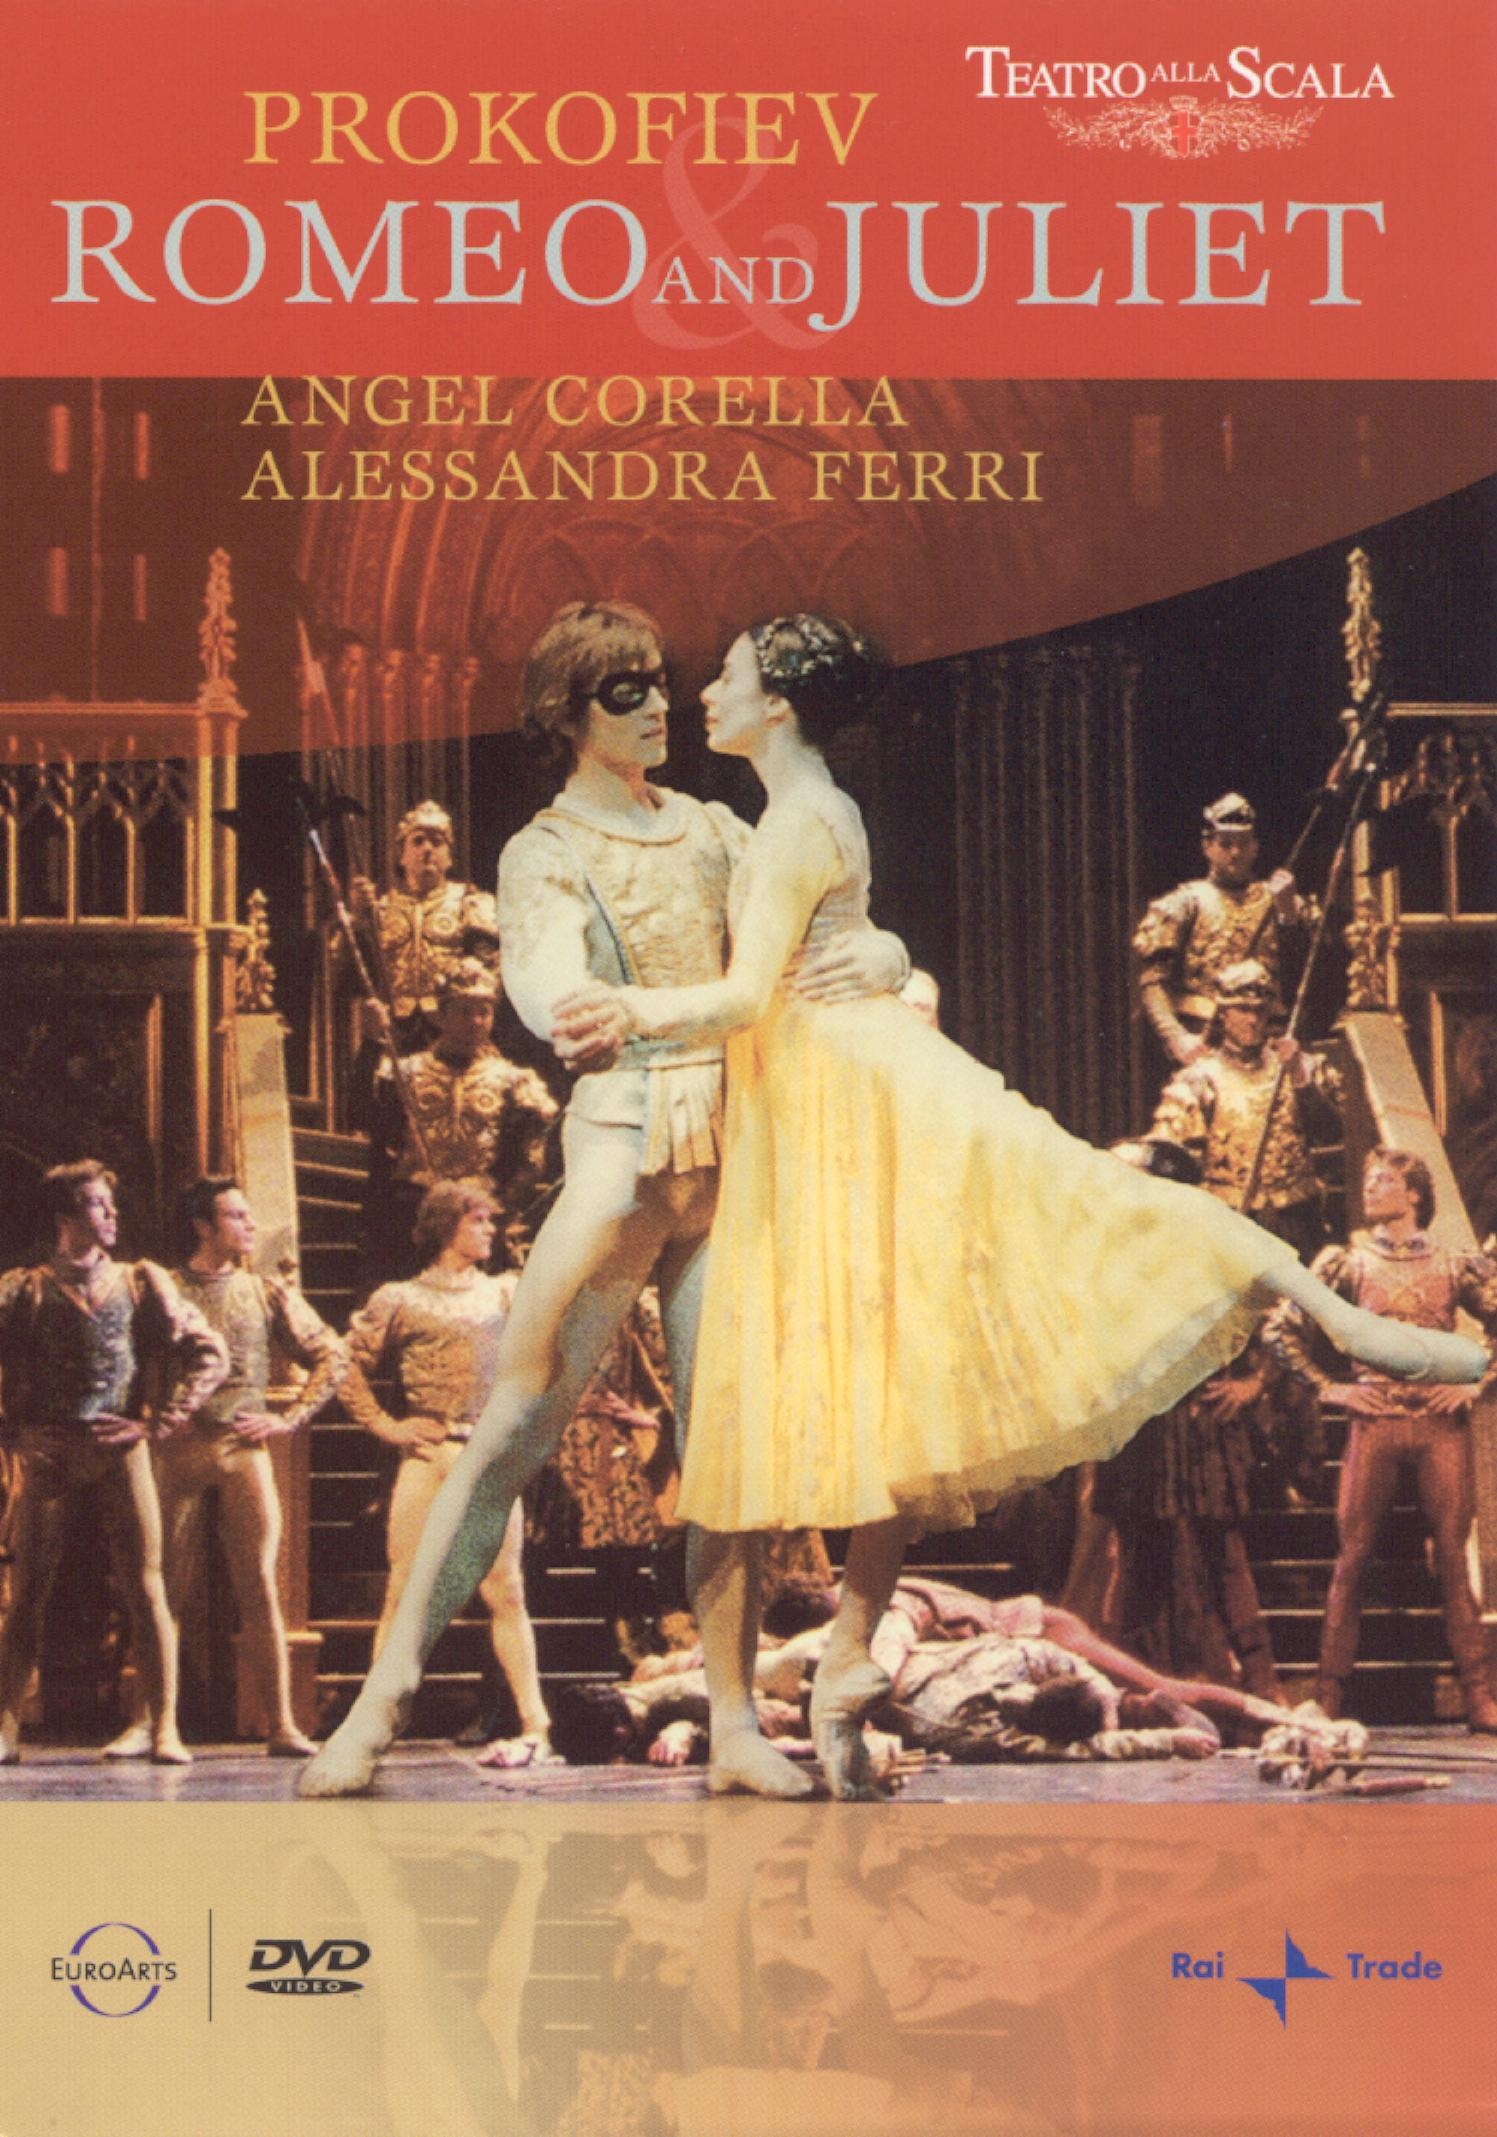 Romeo and Juliet (Teatro alla Scala)